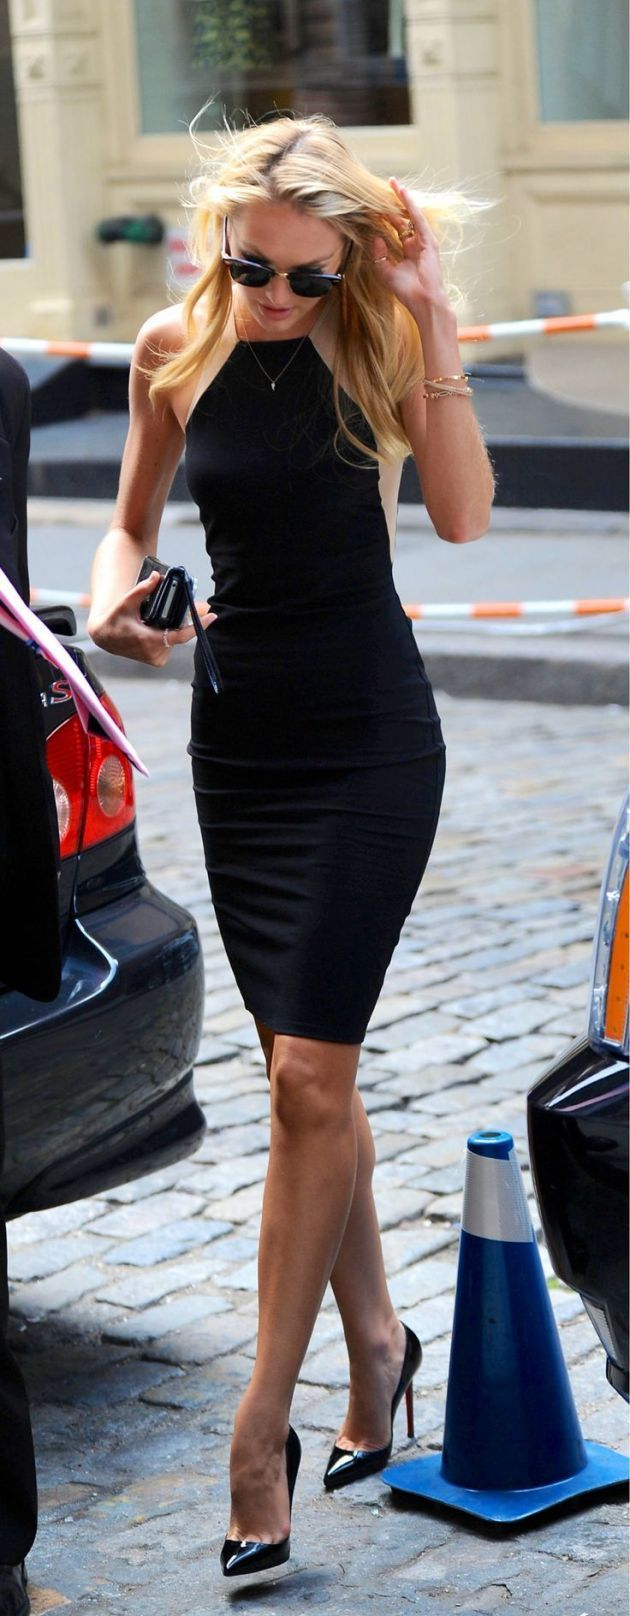 Follow : Women's Fashion - The Little Black Dress Amazing staff!!